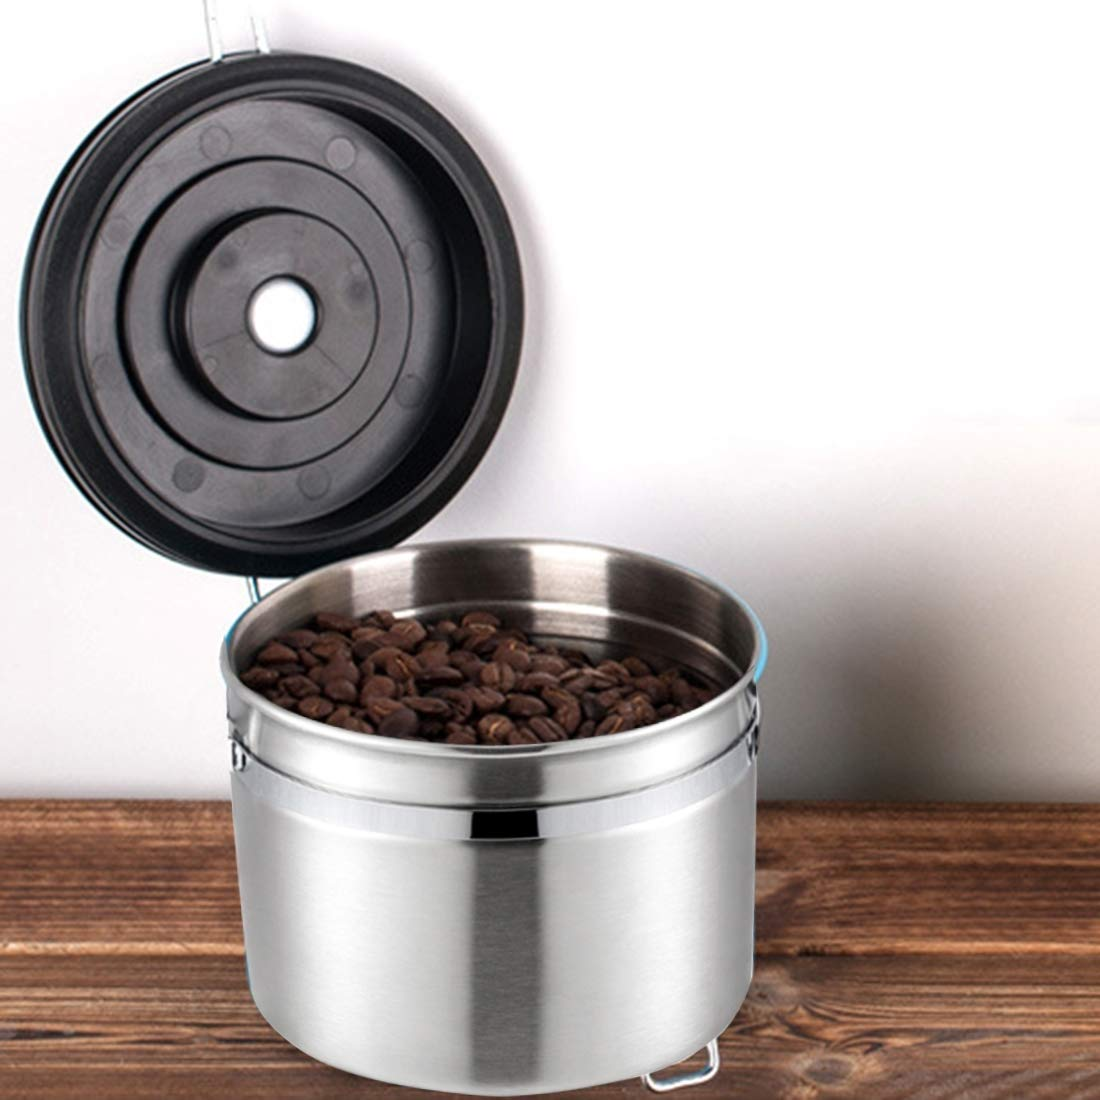 WXQ-XQ 1200ml Stainless Steel Sealed Food Coffee Grounds Bean Storage Container with Built-in CO2 Gas Vent Valve Calendar (Size : Hc4922s) by WXQ-XQ